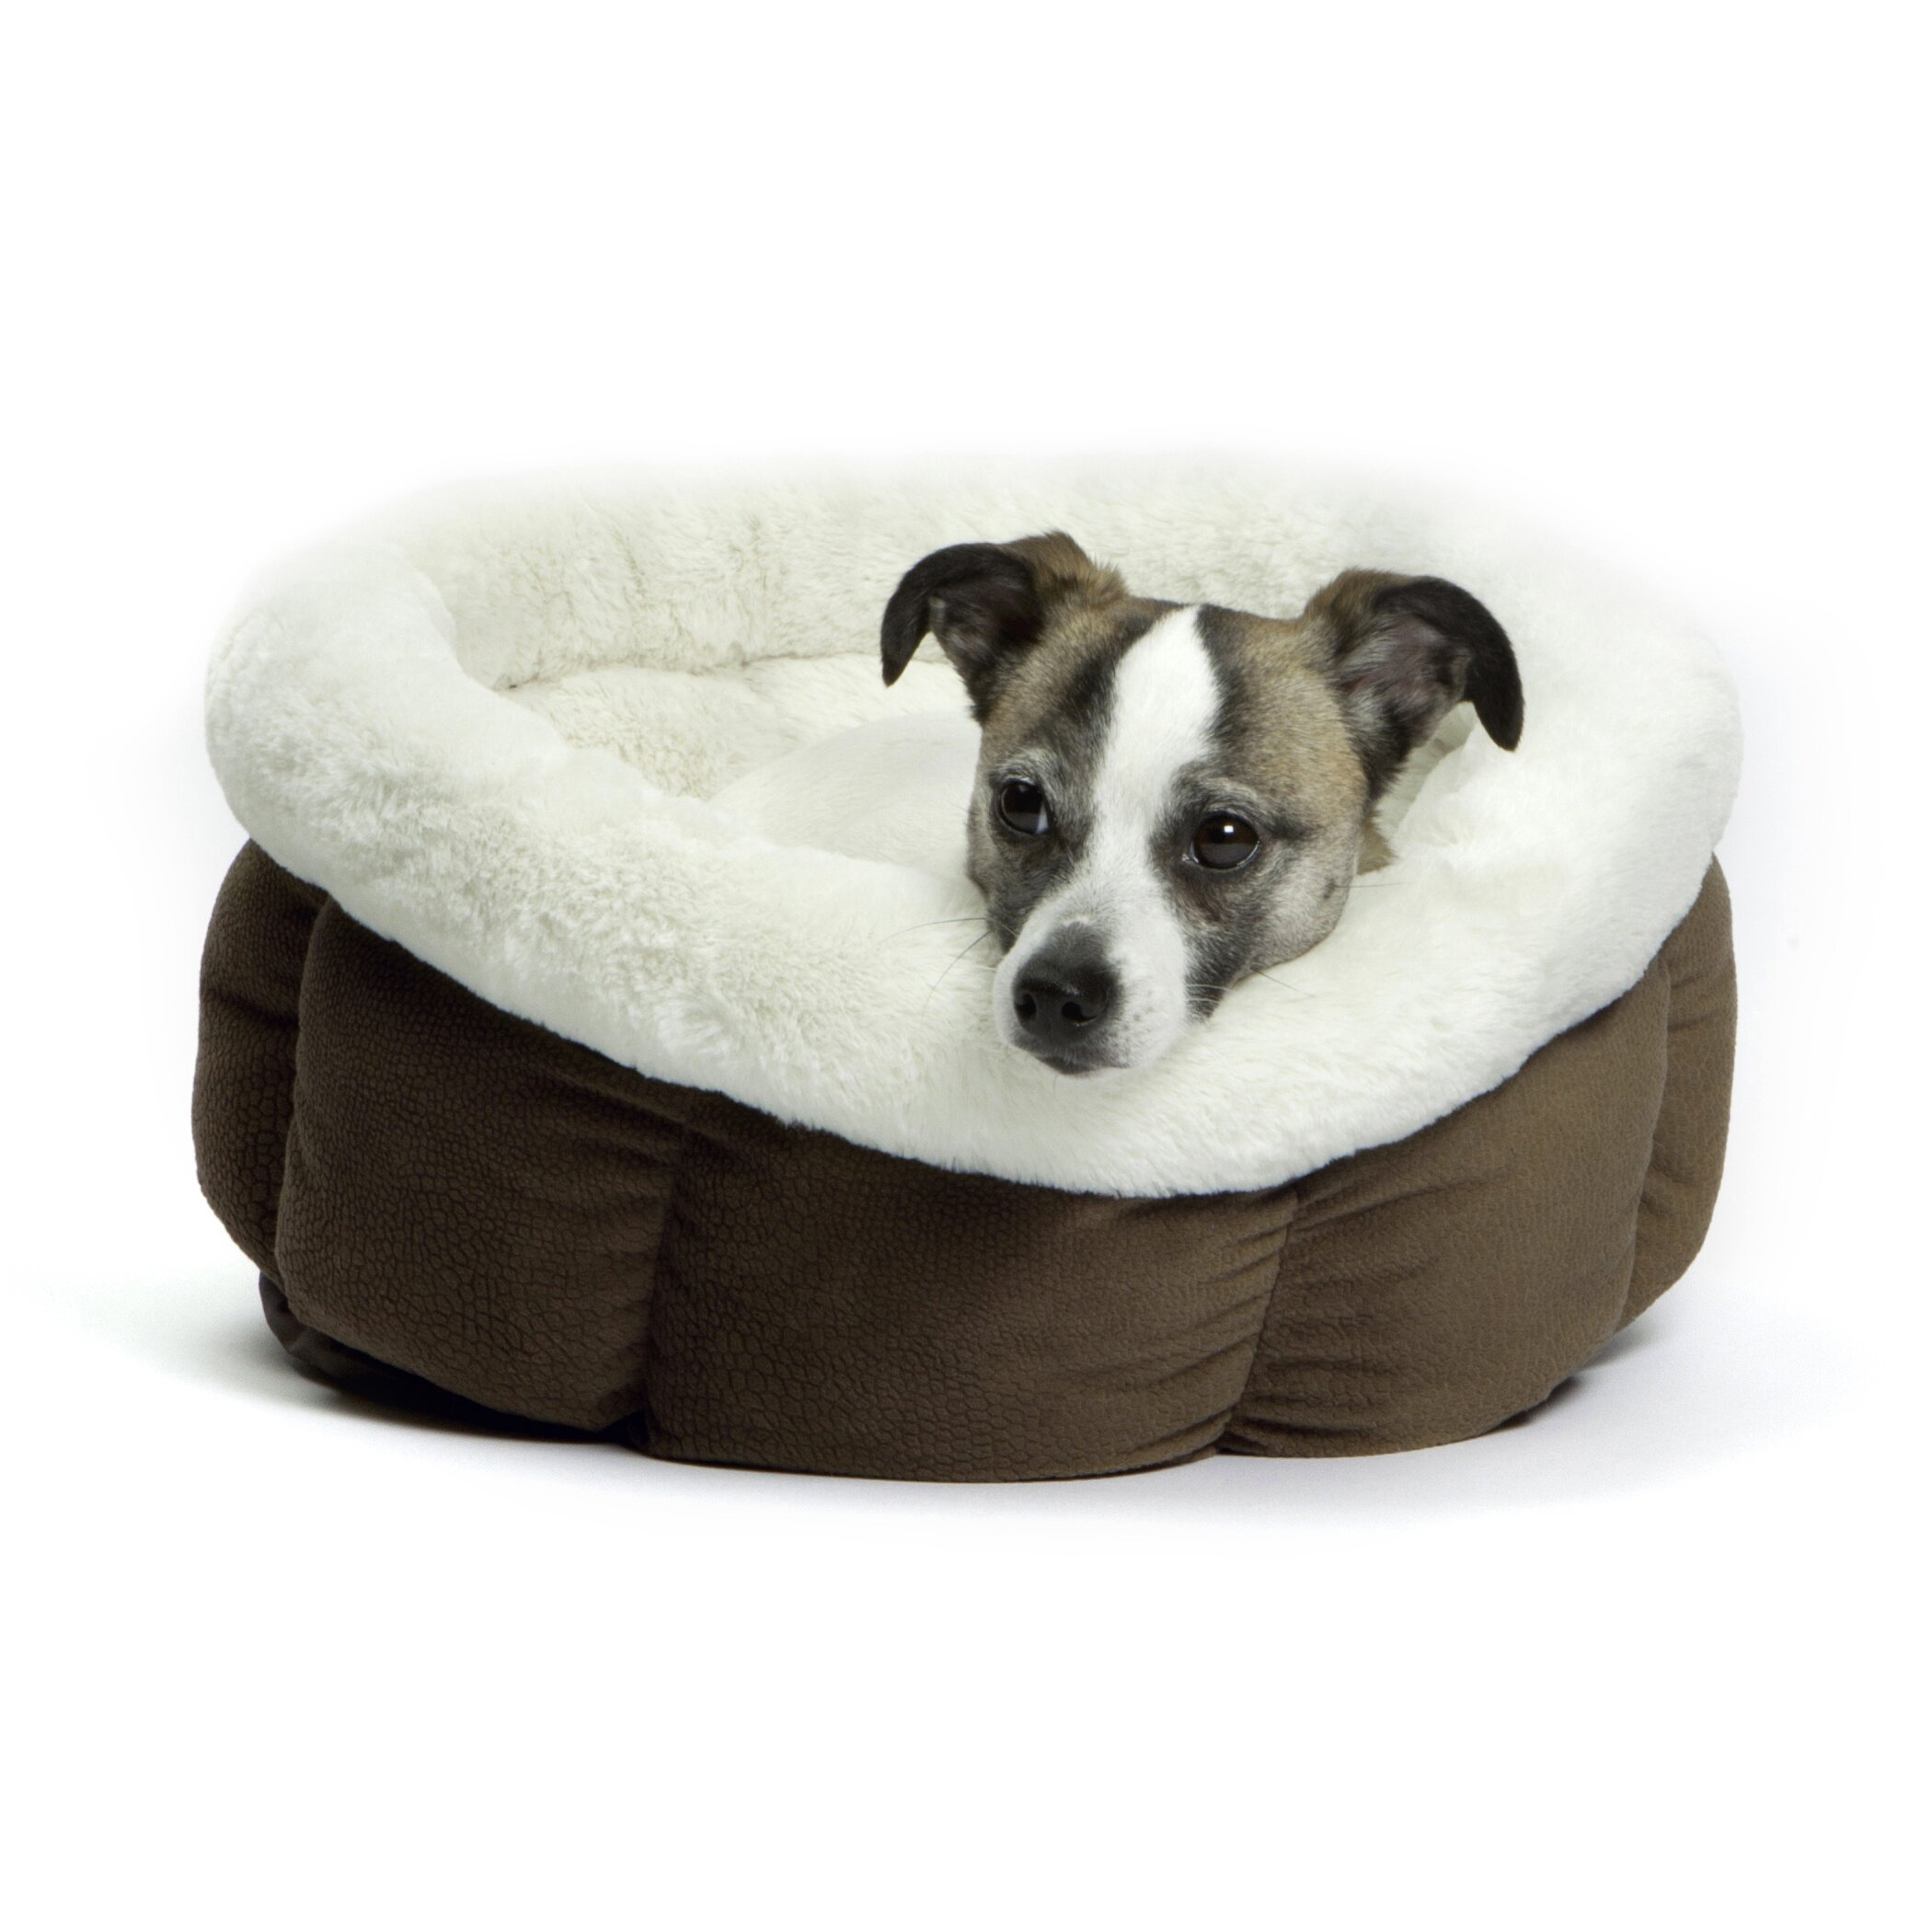 Best Friends Cuddle Cup Dog Bed